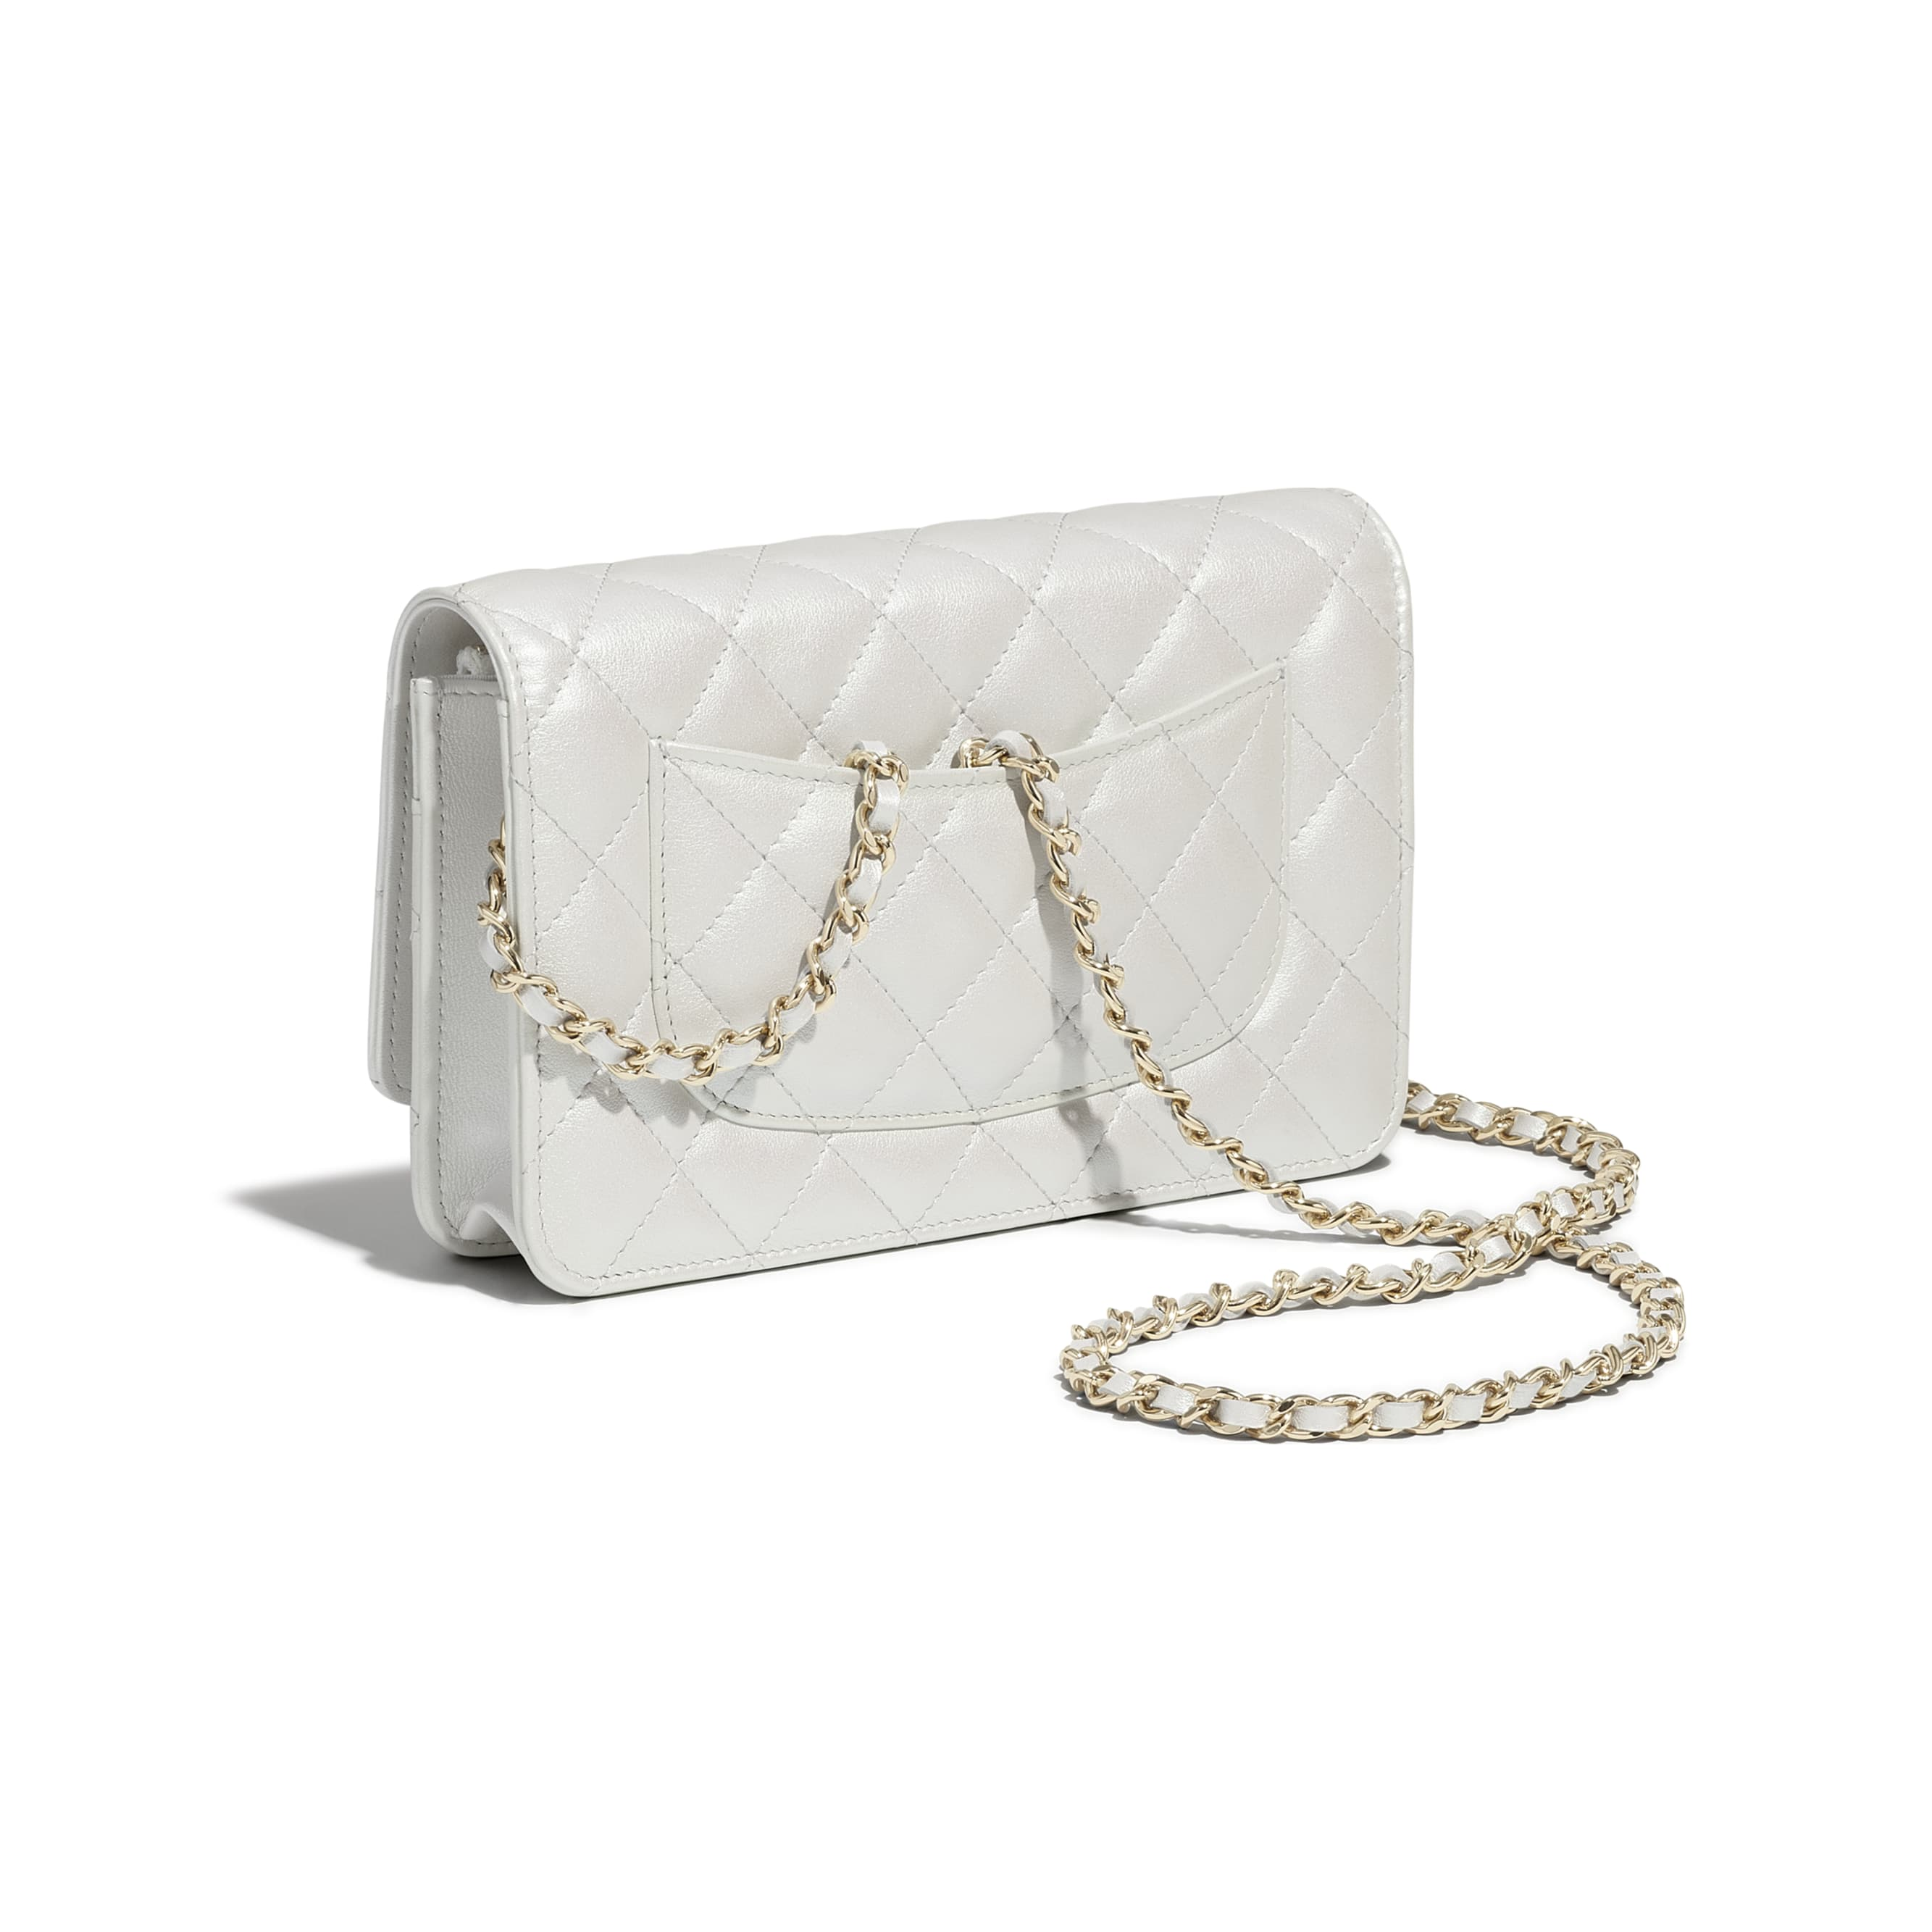 Classic Wallet On Chain - White - Iridescent Calfskin & Gold-Tone Metal - CHANEL - Extra view - see standard sized version